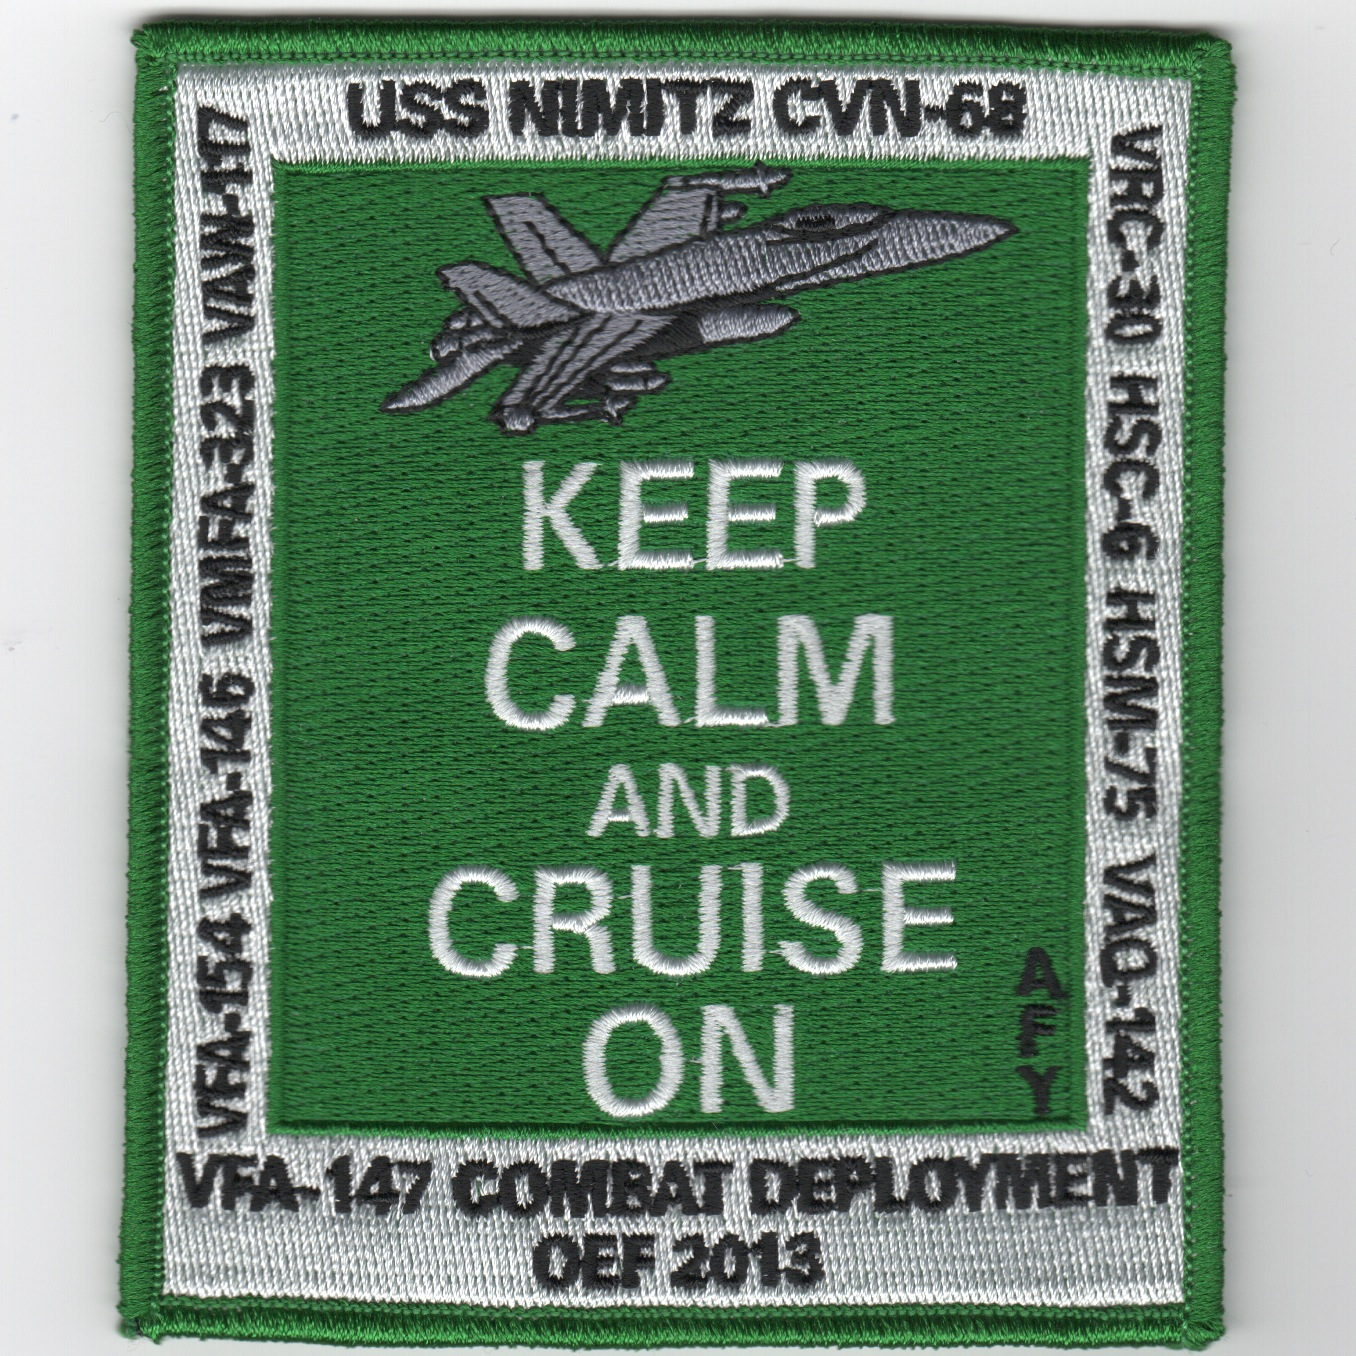 CVN-68/VFA-146 2013 OEF 'Keep Calm' Cruise Patch (Green)